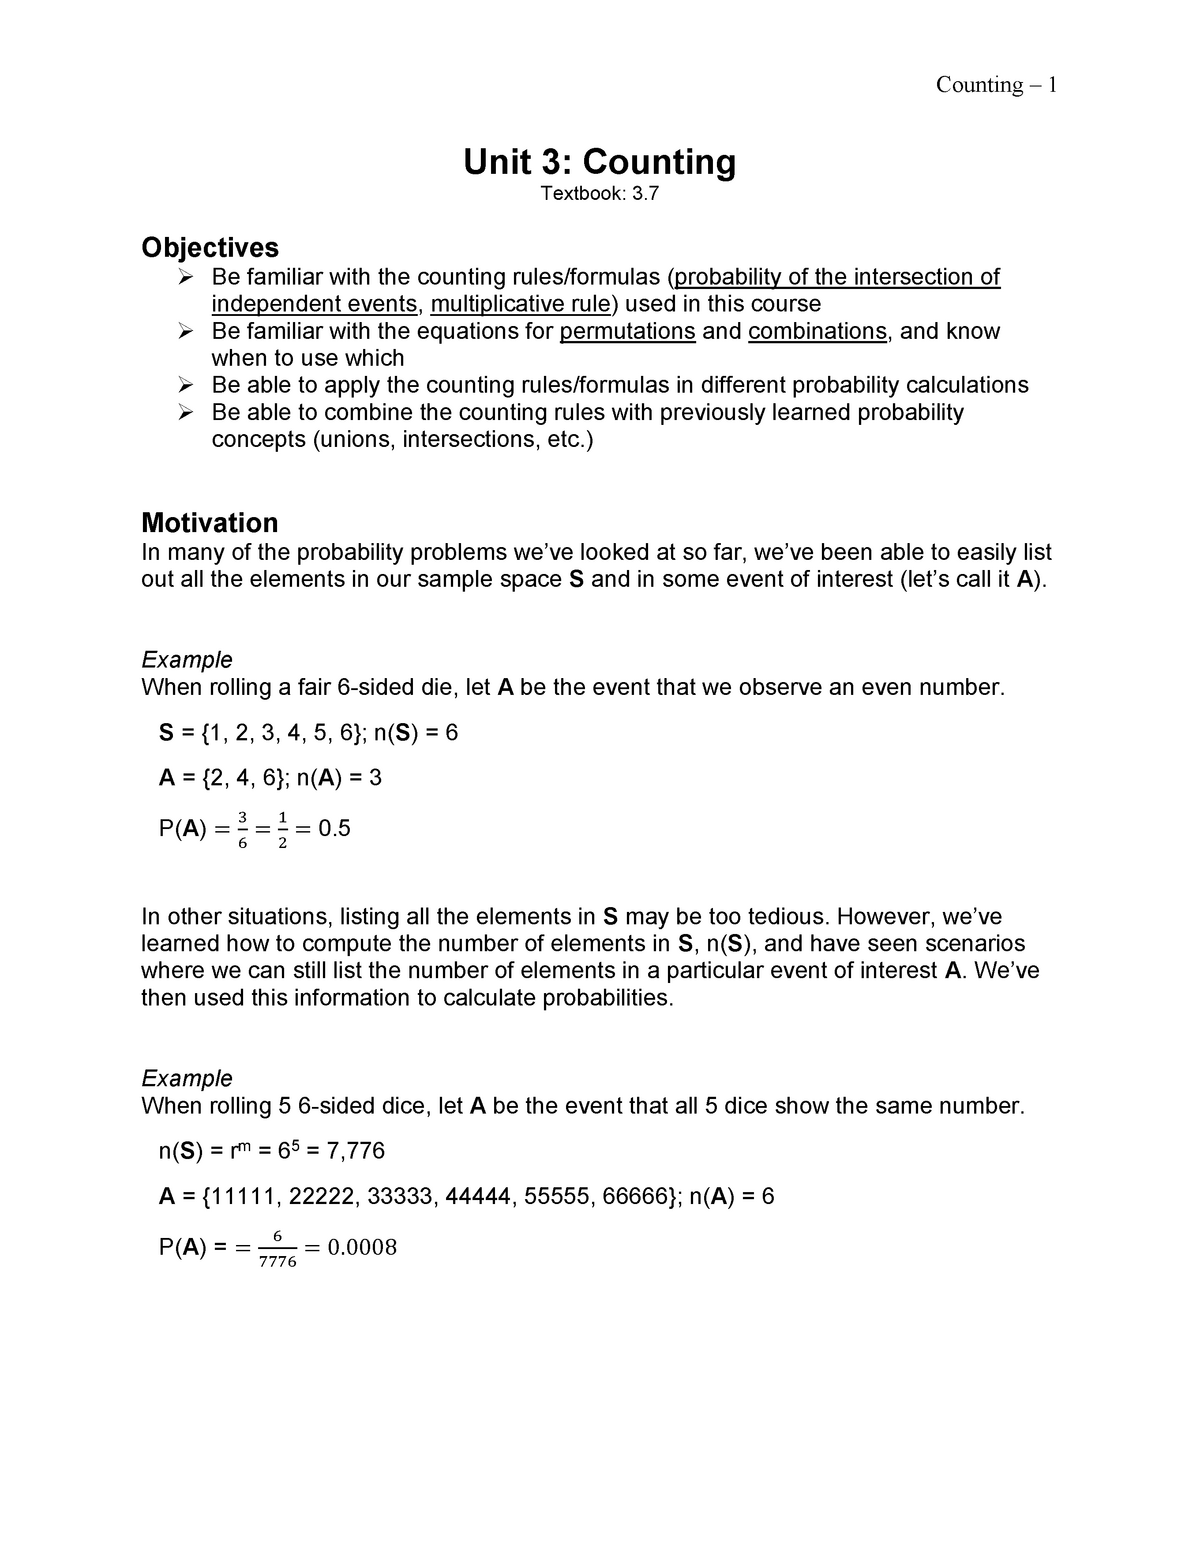 Unit 3 - Counting - Lecture notes 3 - Statistics 213 - StuDocu